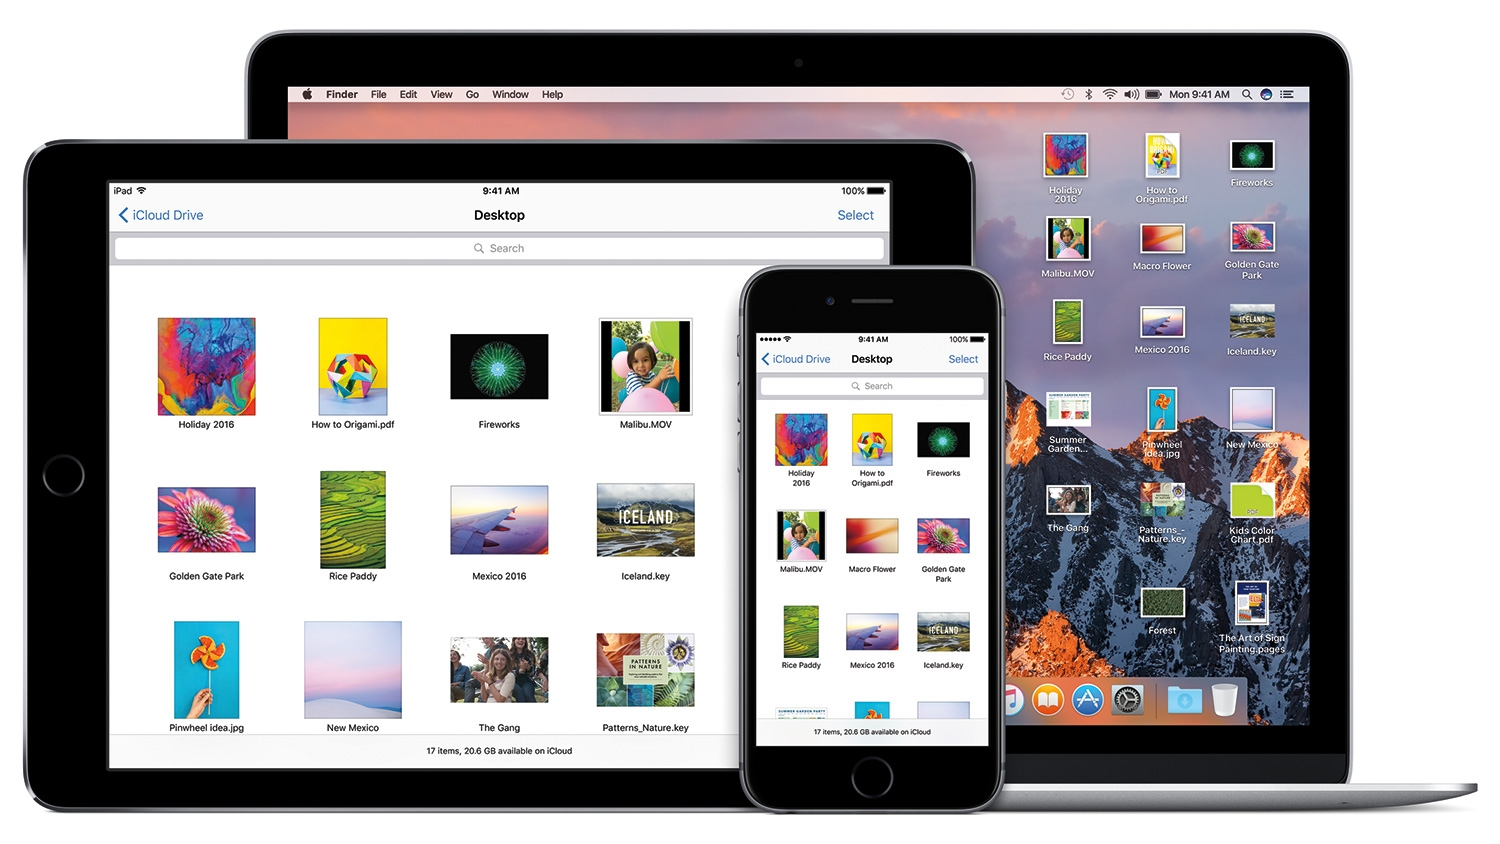 Apple WWDC 2016 news: what matters to designers - News - Digital Arts